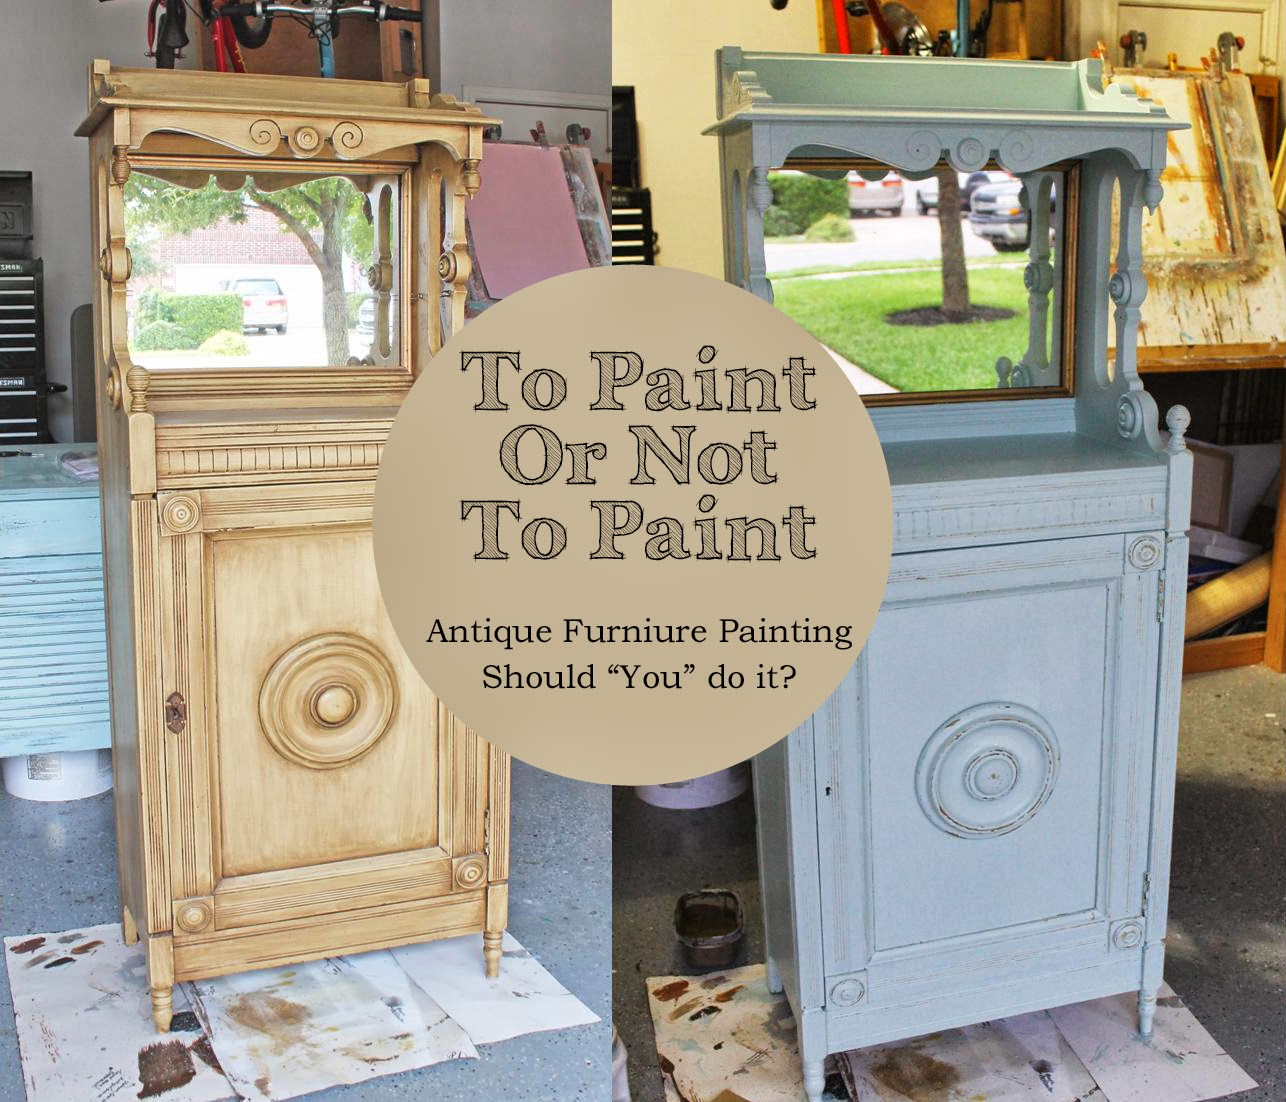 To Paint Or Not To Paint  Antique Furniture. The ragged wren   To Paint Or Not To Paint  Antique Furniture